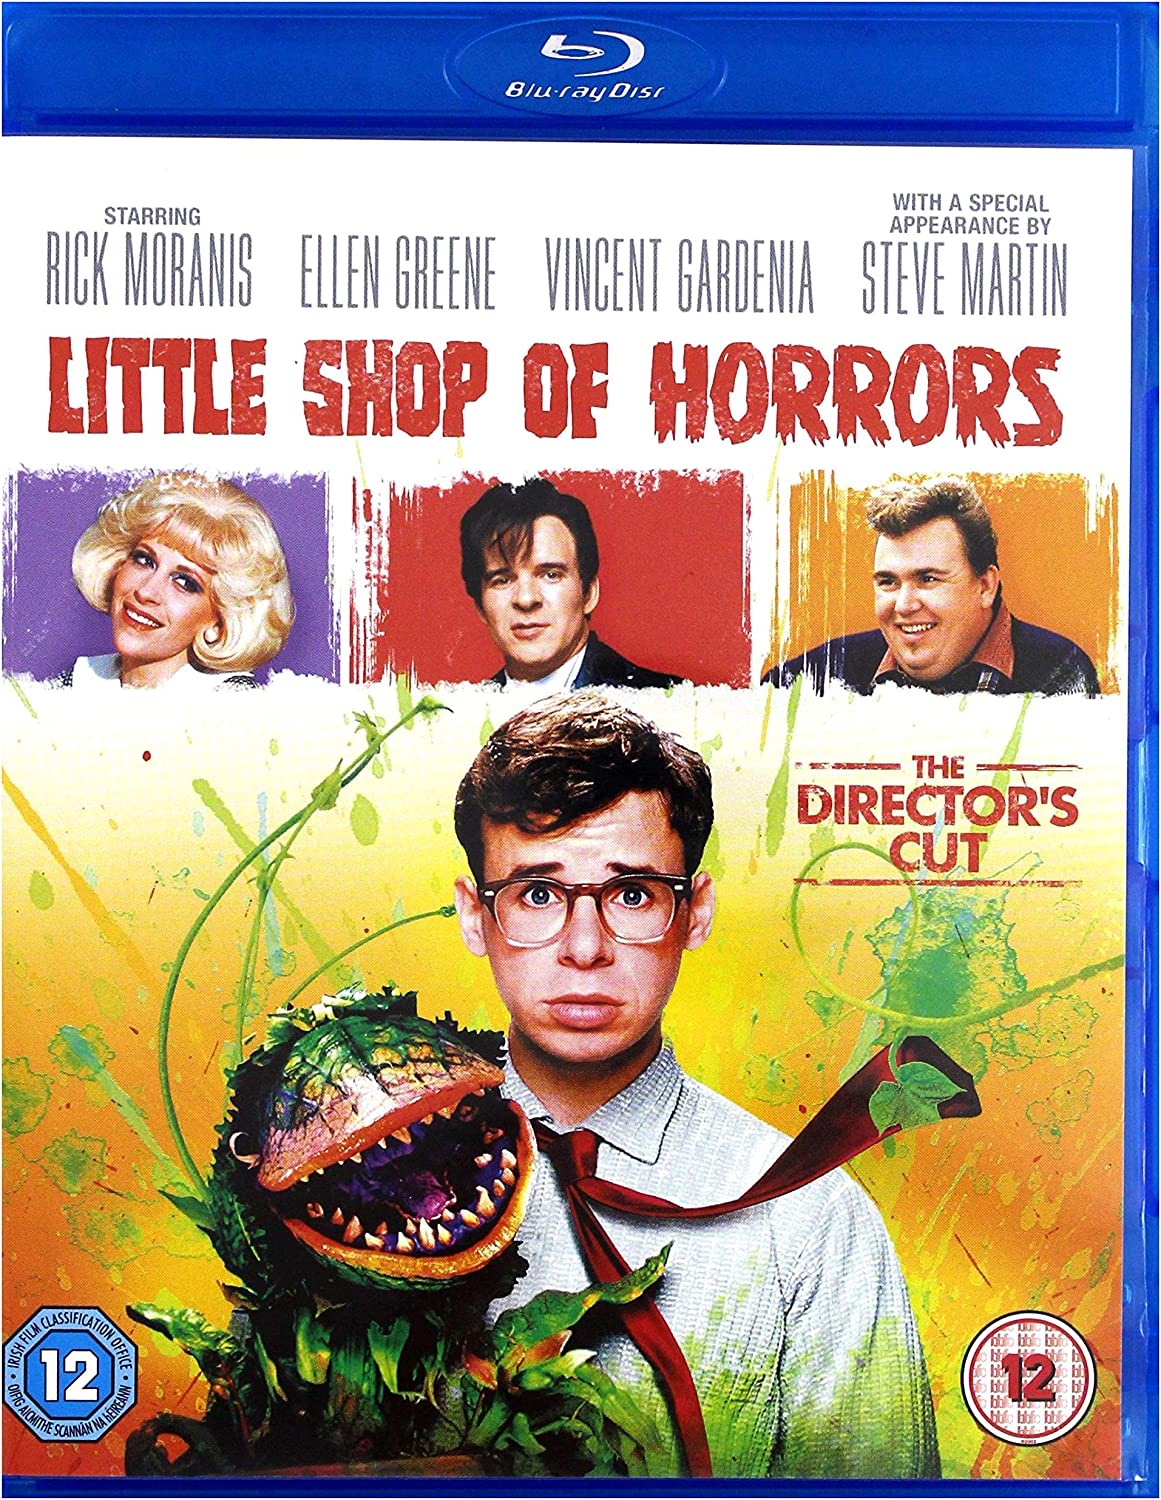 Little Shop Of Horrors Blu Ray 1986 Region Free Amazon Co Uk Rick Moranis Ellen Greene Steve Martin Frank Oz Rick Moranis Ellen Greene Dvd Blu Ray